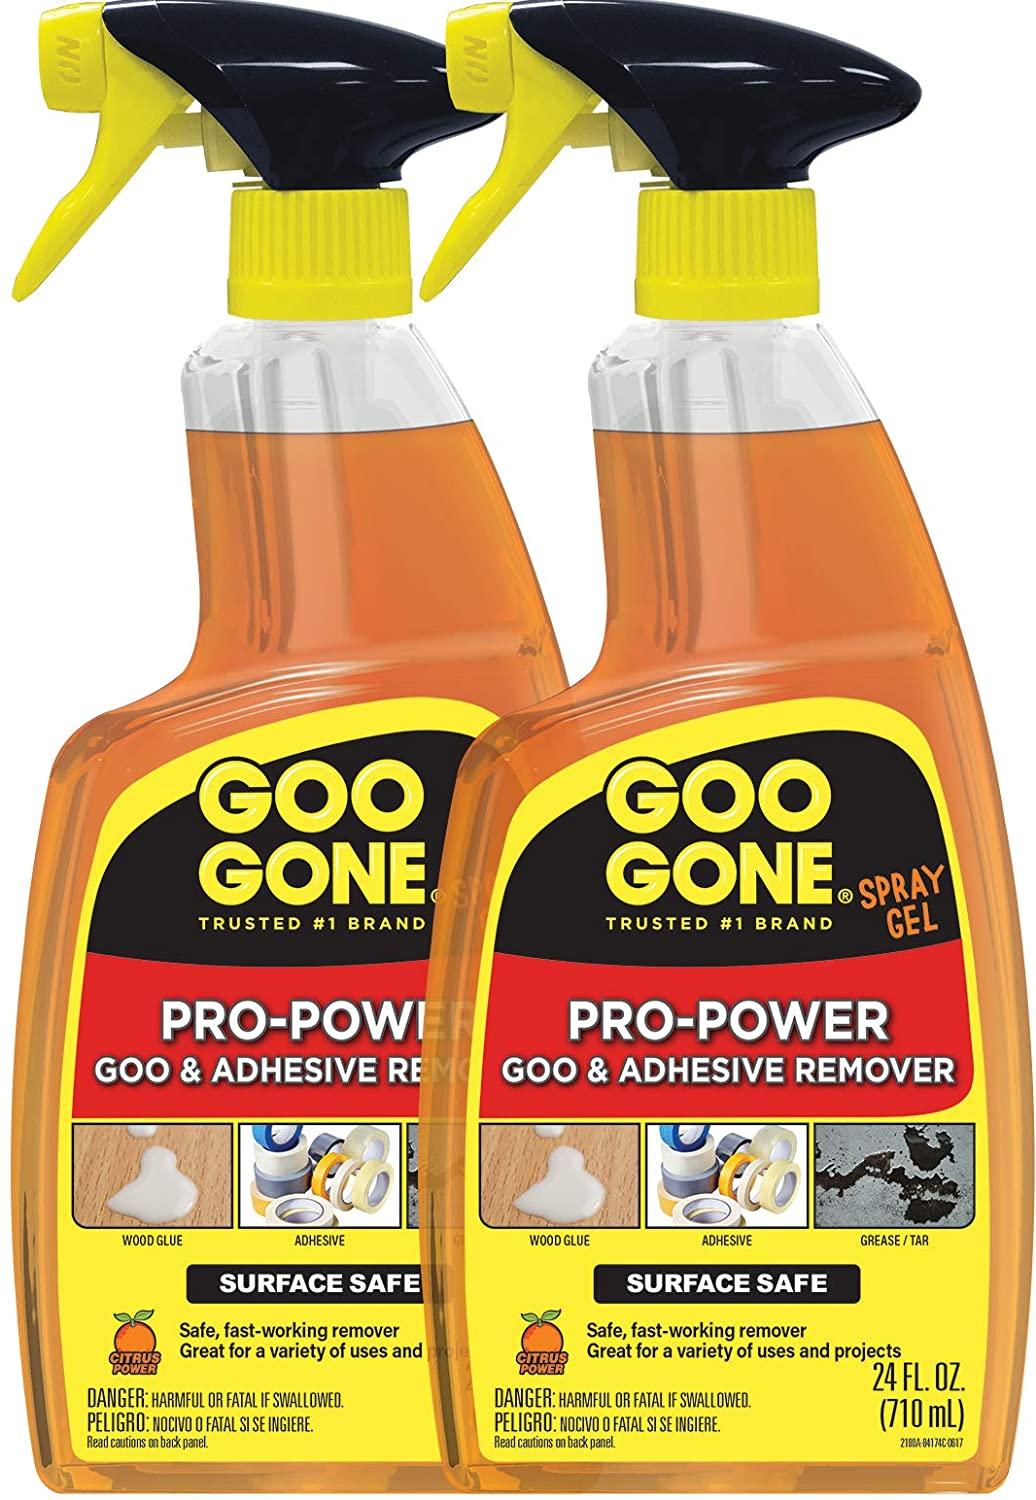 Goo Gone Pro-Power Spray Gel - 24 Ounce (2 Pack) - Surface Safe, Great Cleaner, No Harsh Odors, Removes Stickers, Can Be Used On Tools